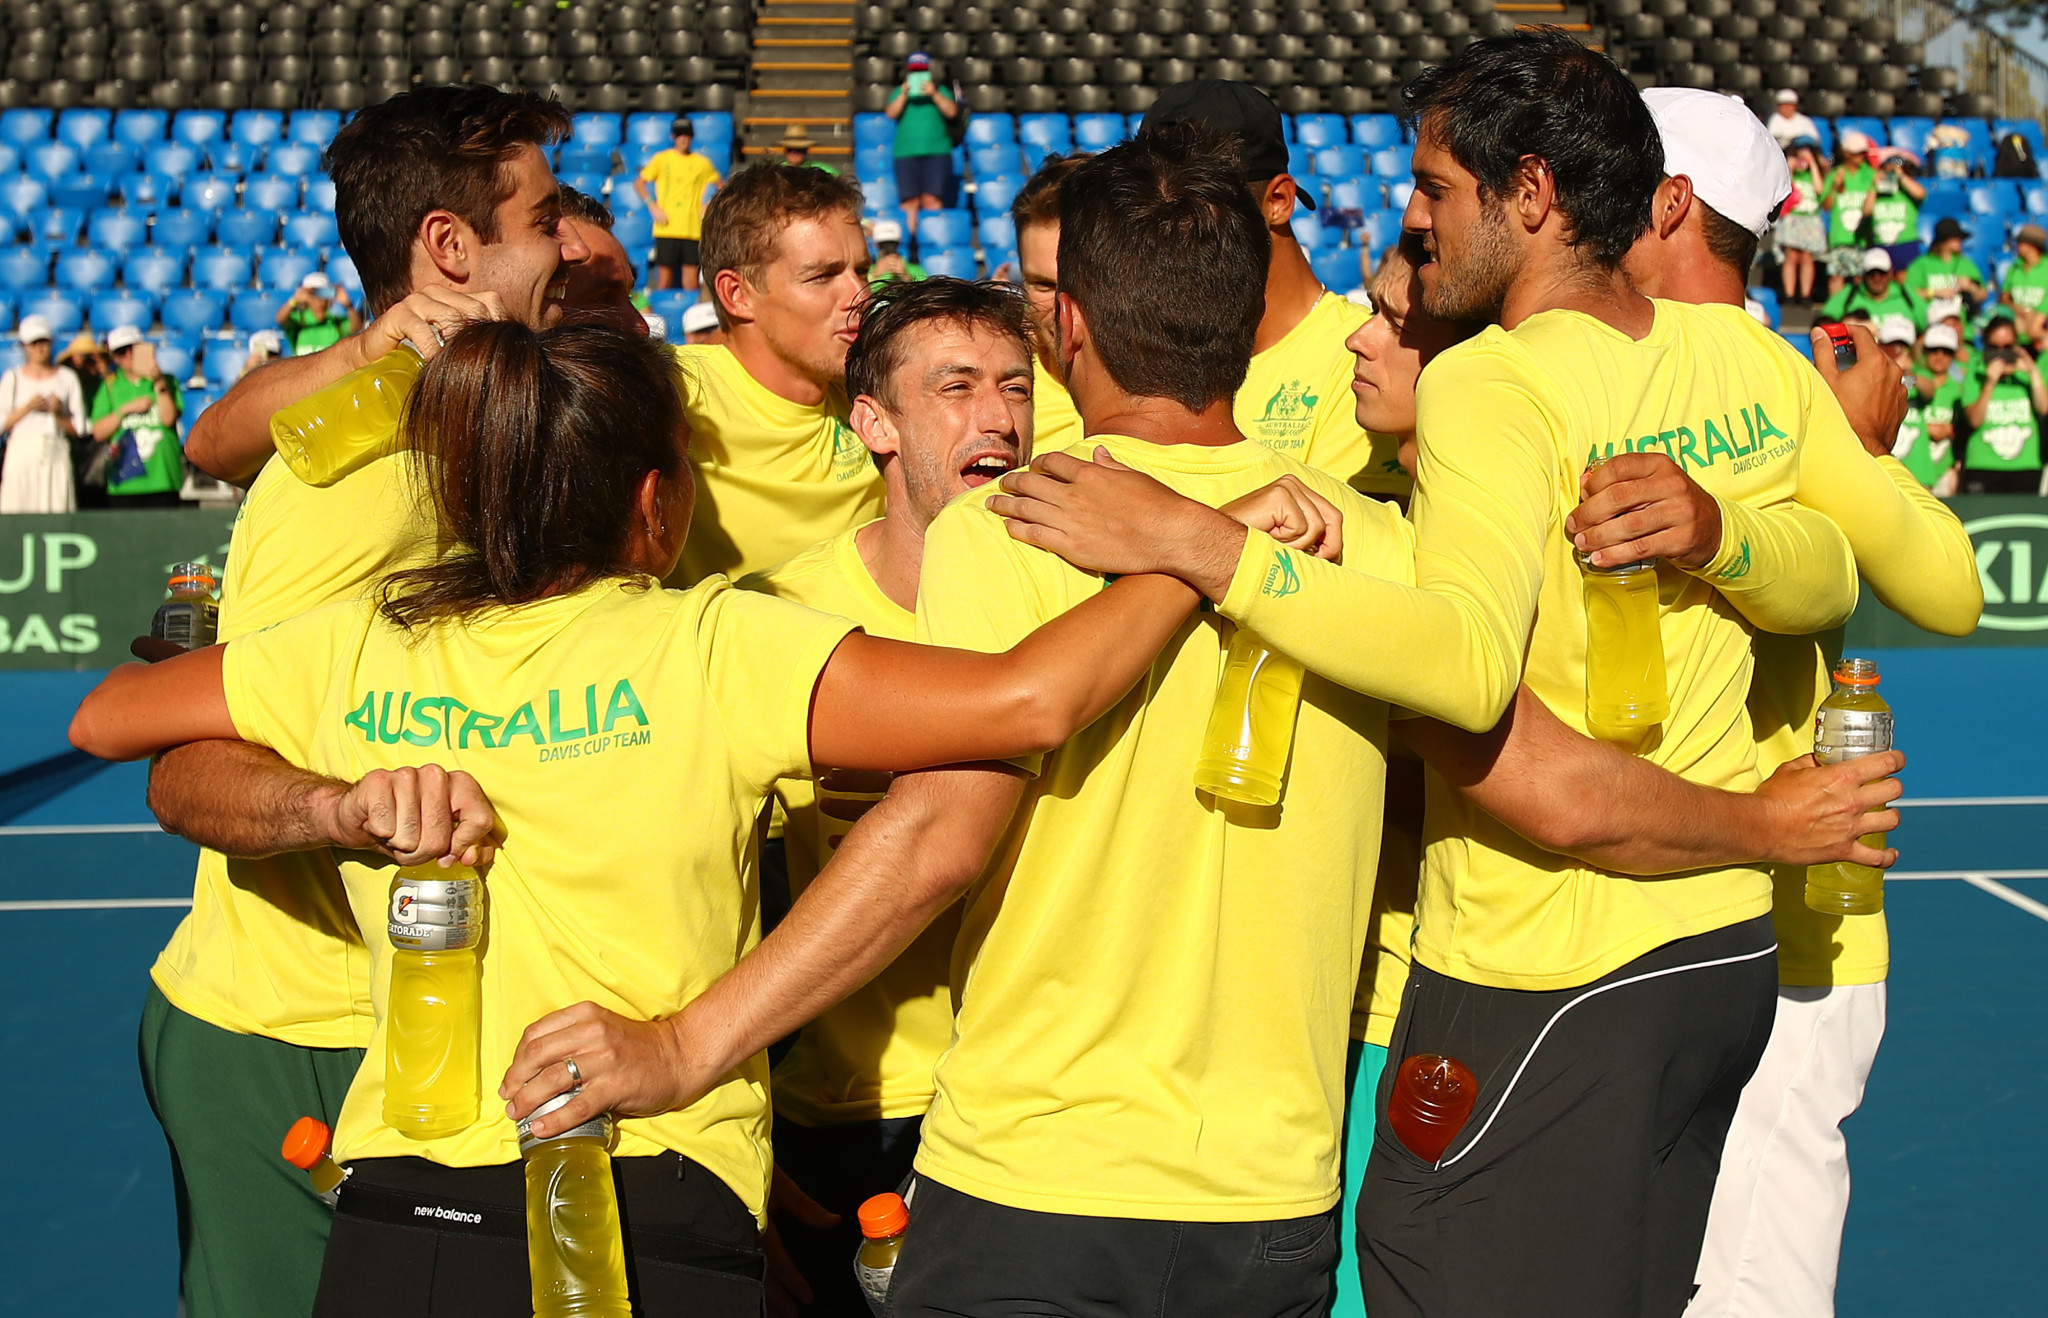 Australia among nations to book their place in Davis Cup Finals as qualifiers end